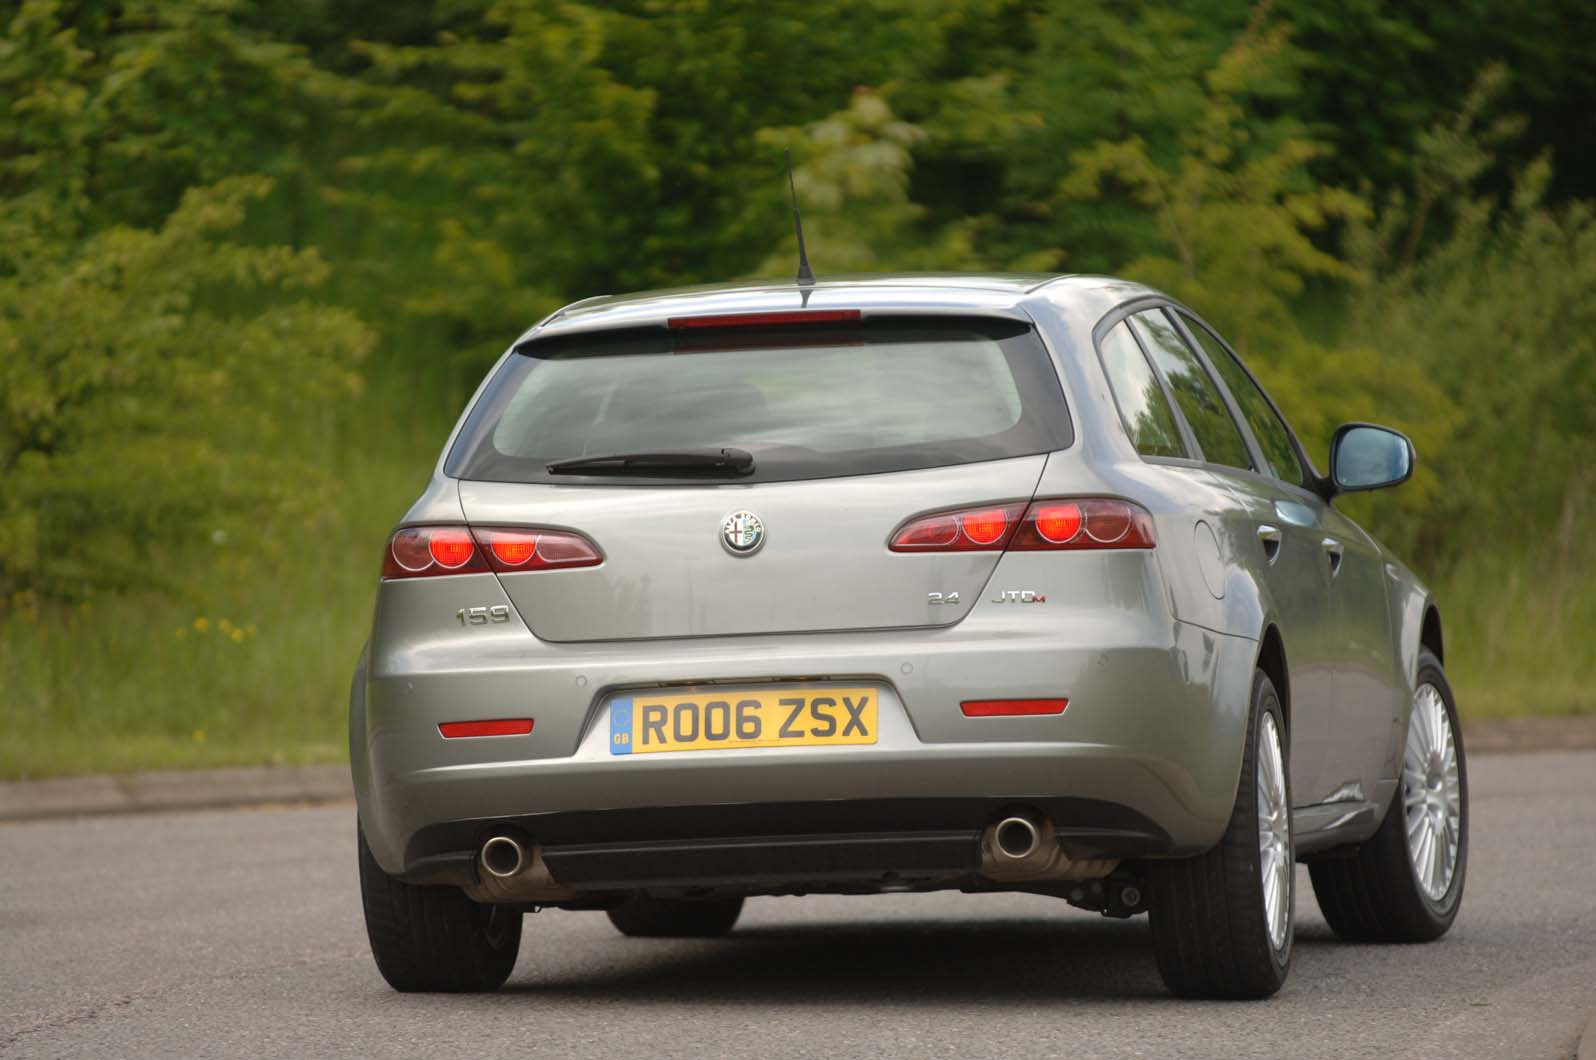 Used Car Buying Guide Alfa Romeo 159 Sportwagon Autocar Transmission Listen For Noise In The Upper Gears Caused By Worn Bearings Gearbox End Case If You Hear Clunking On A Diesel As Let Clutch